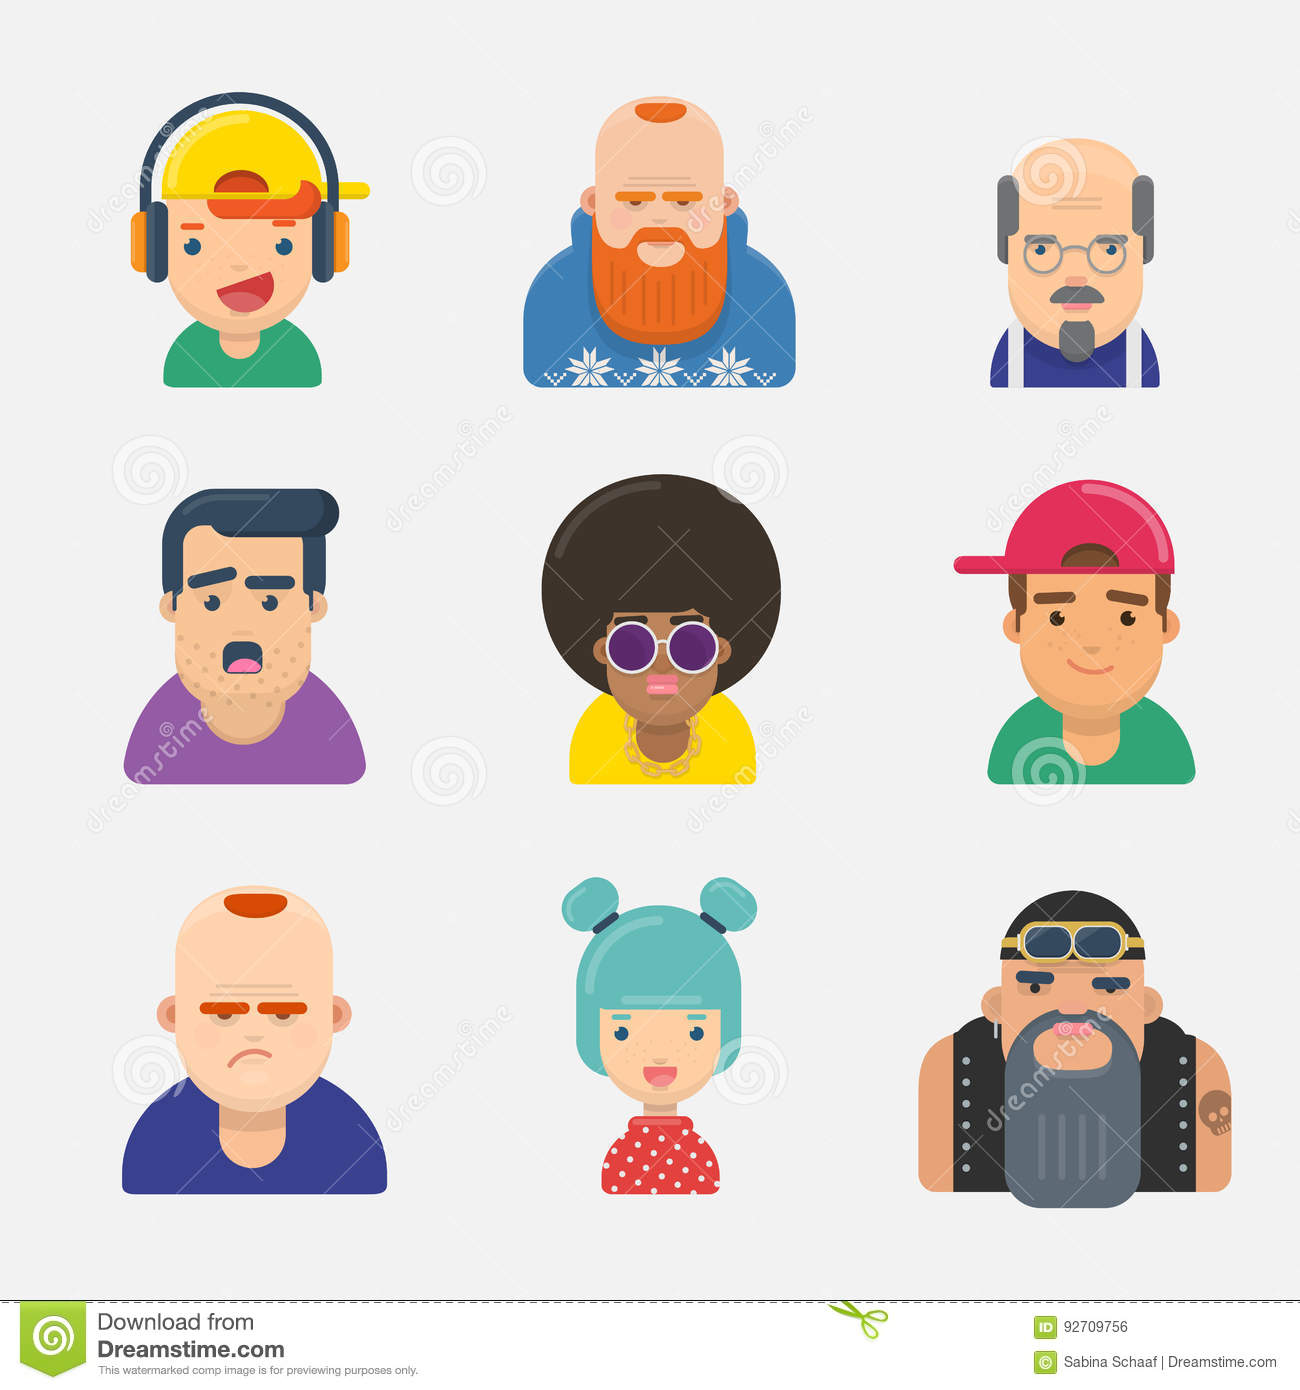 Set of funny avatars different persons gender and age